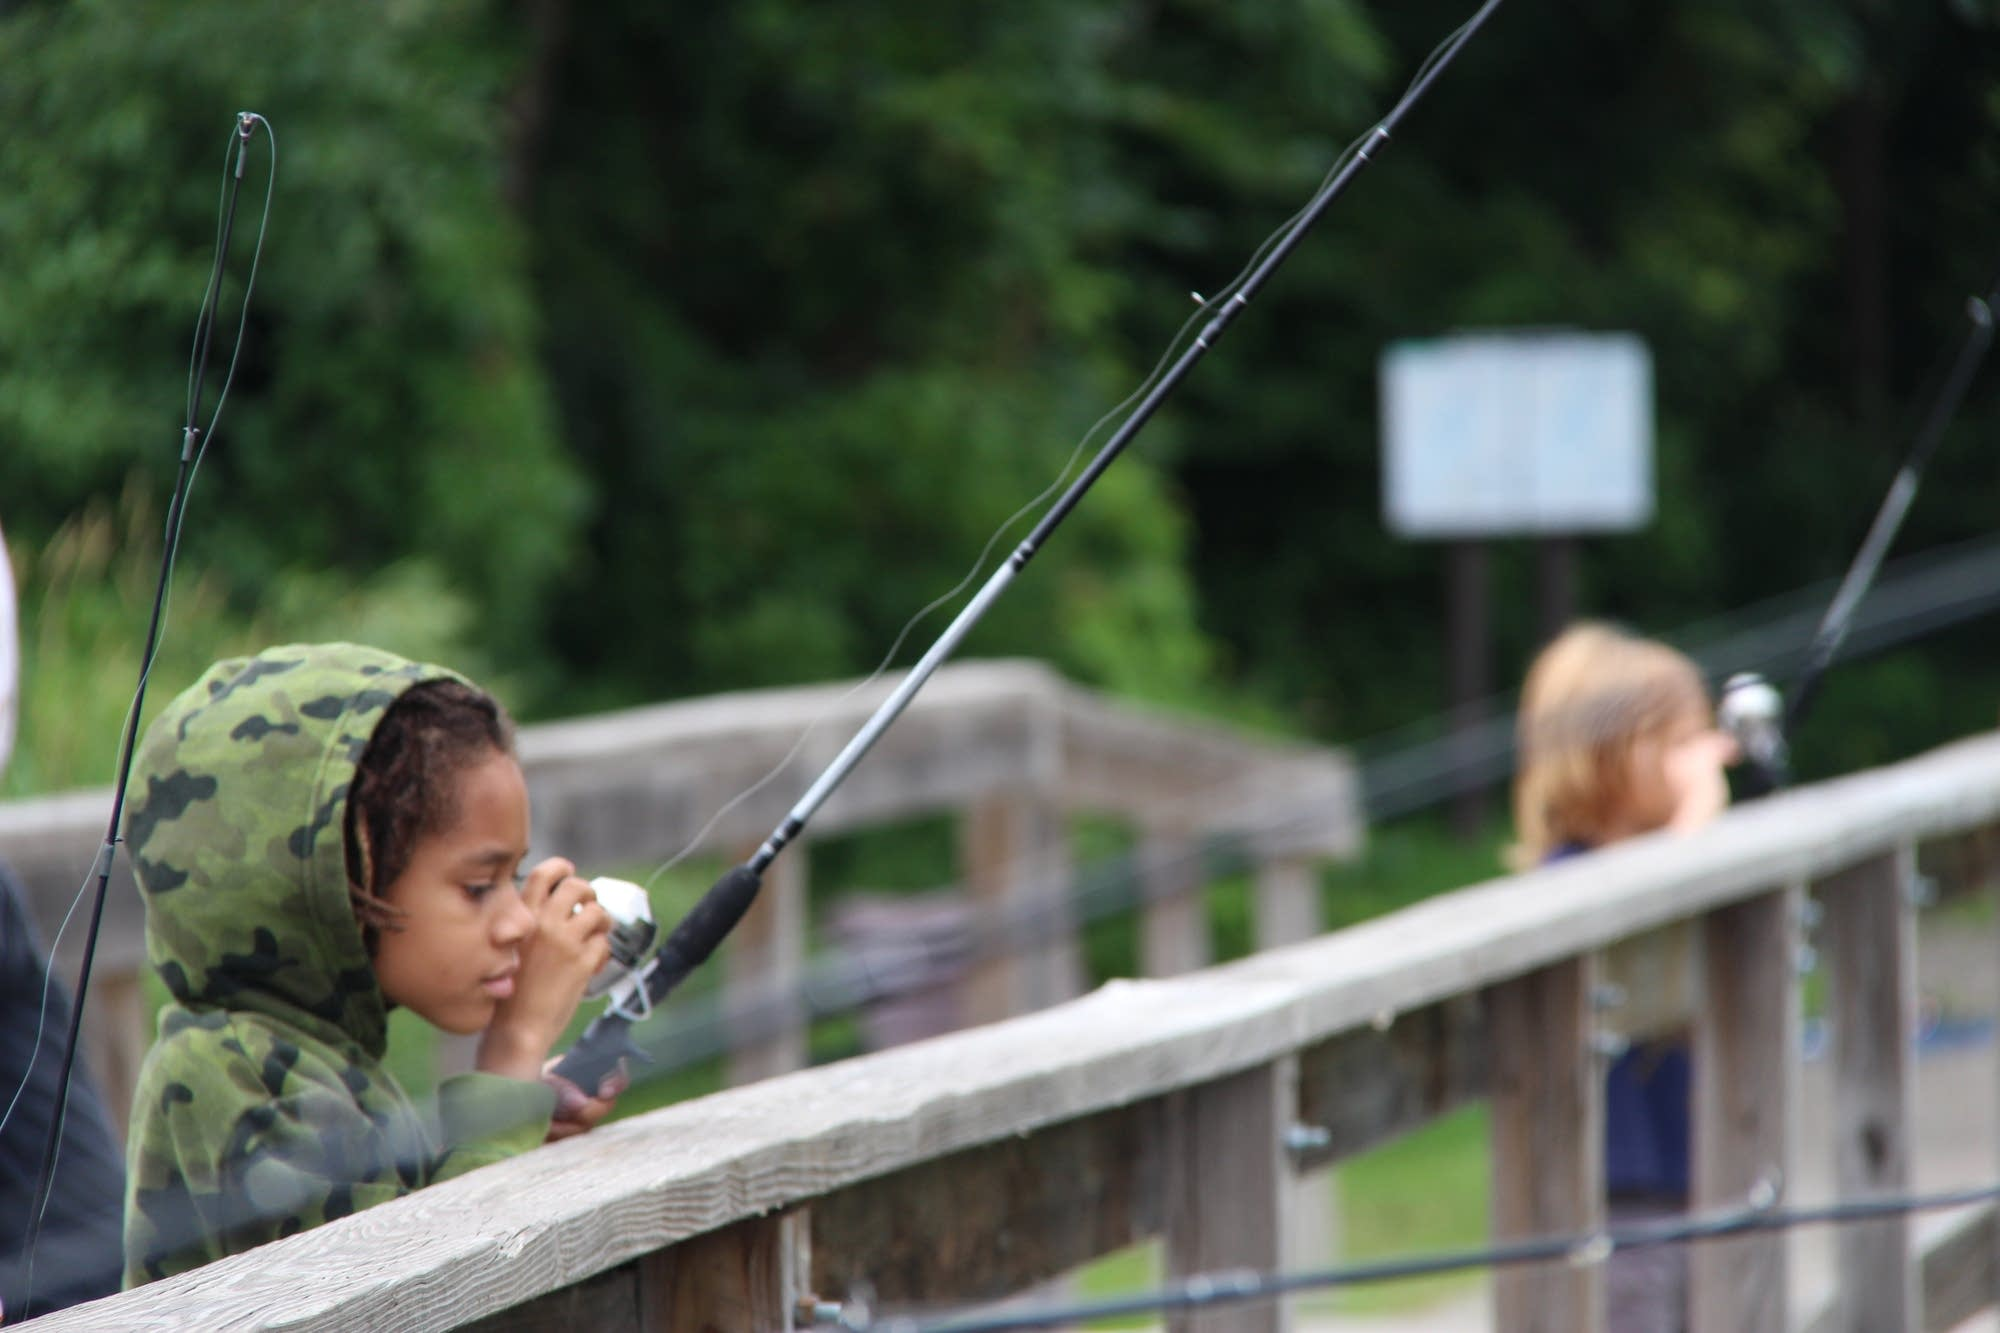 Amitri Hosea watches his line after casting into Snelling Lake.